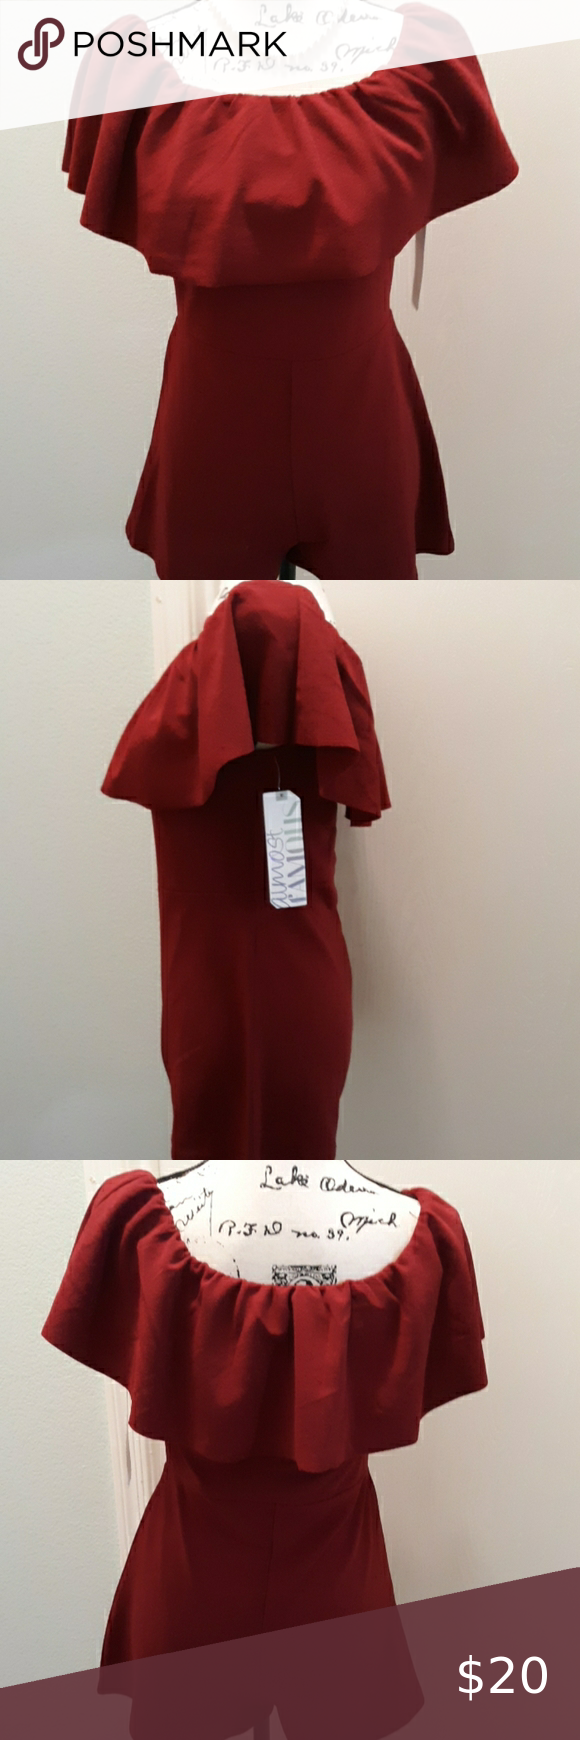 NWT Almost Famous wine color romper NWT Almost Famous wine color romper  Feels like peplum material 95% polyester 5% spandex  Perfect for Valentine's Day or any date night  Features draped material over bodice  Small B: 26-32 W: 24-28 H: 34-38 L: 22 #0525  Medium B: 30-34 W: 26-30 H: 36-40 L: 23 #0526  Large B: 32-36 W: 28-32 H: 38-42 L: 24 #0527  2